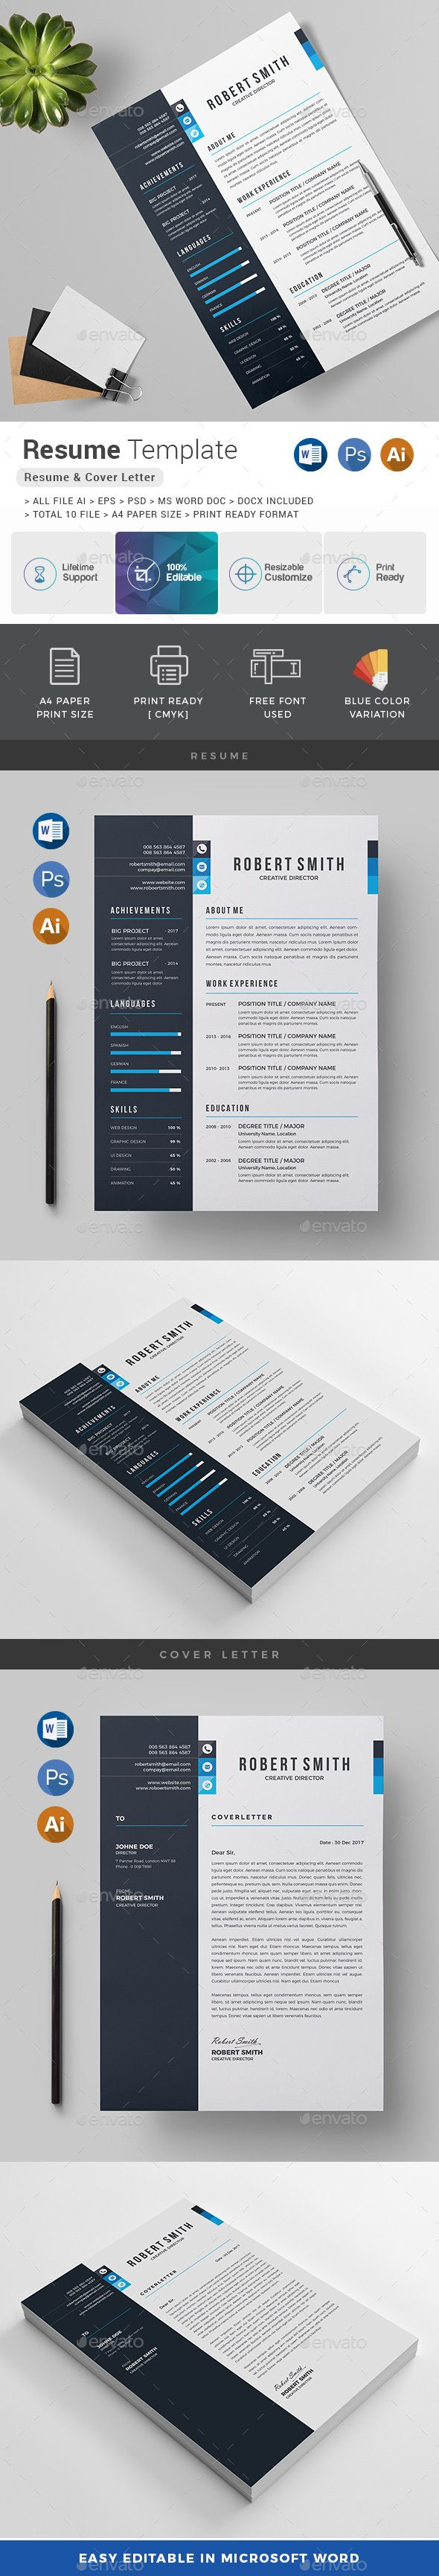 Resume Resumes Stationery Features of Resume